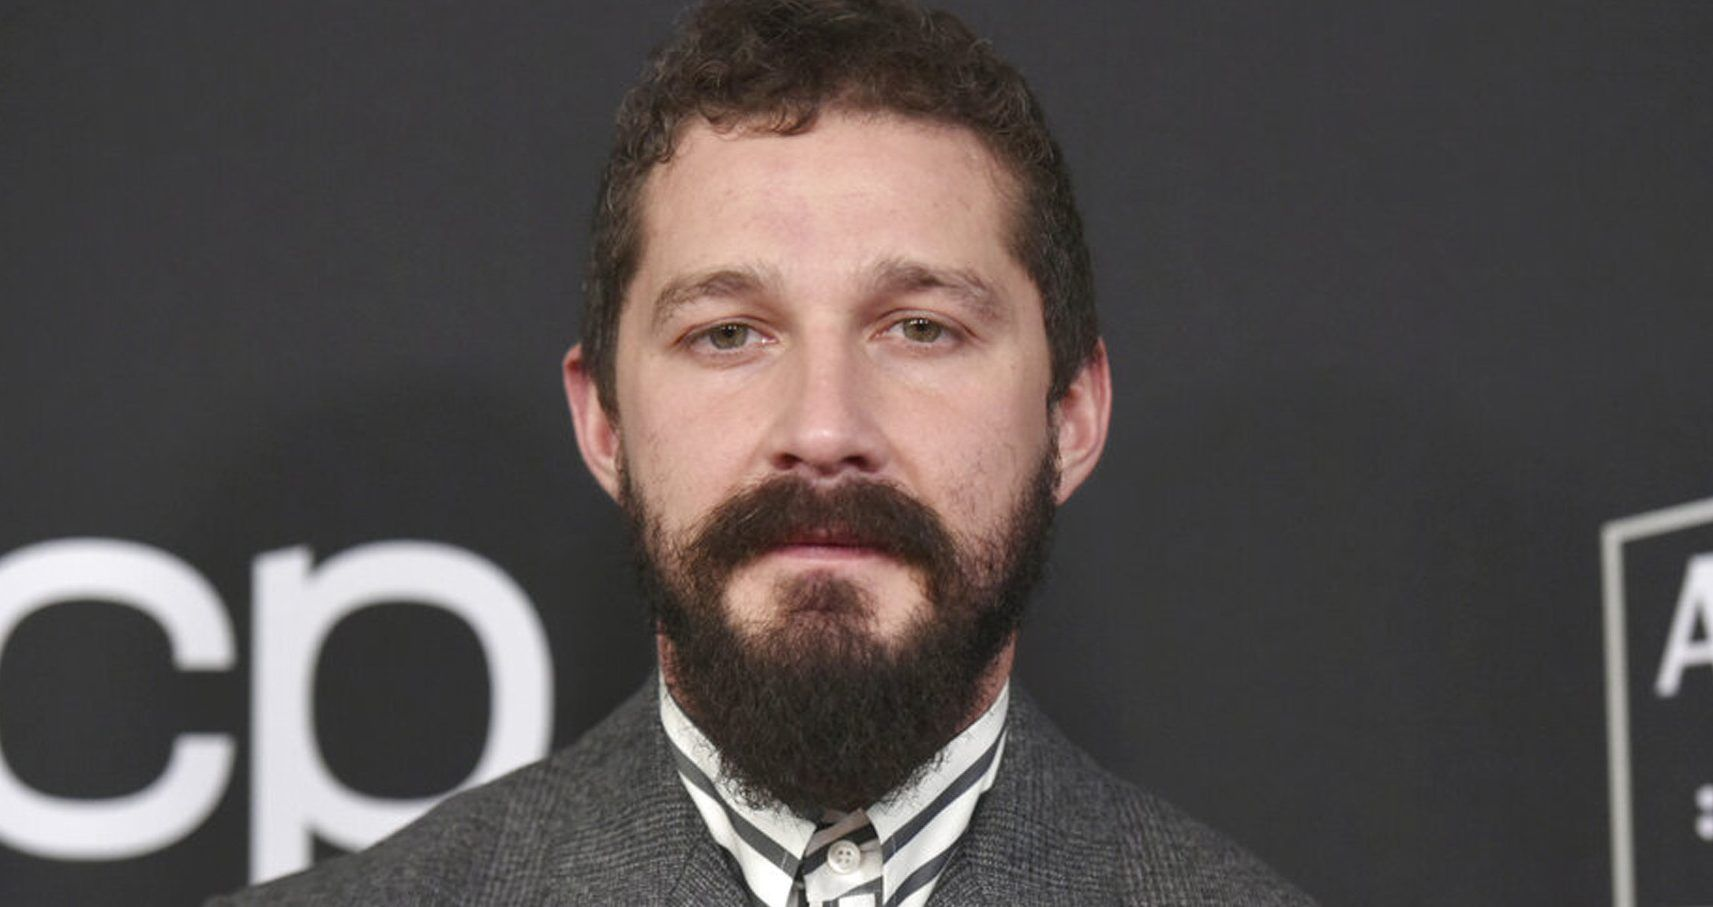 'I Have No Excuses:' Shia Labeouf Responds To FKA Twig Allegations